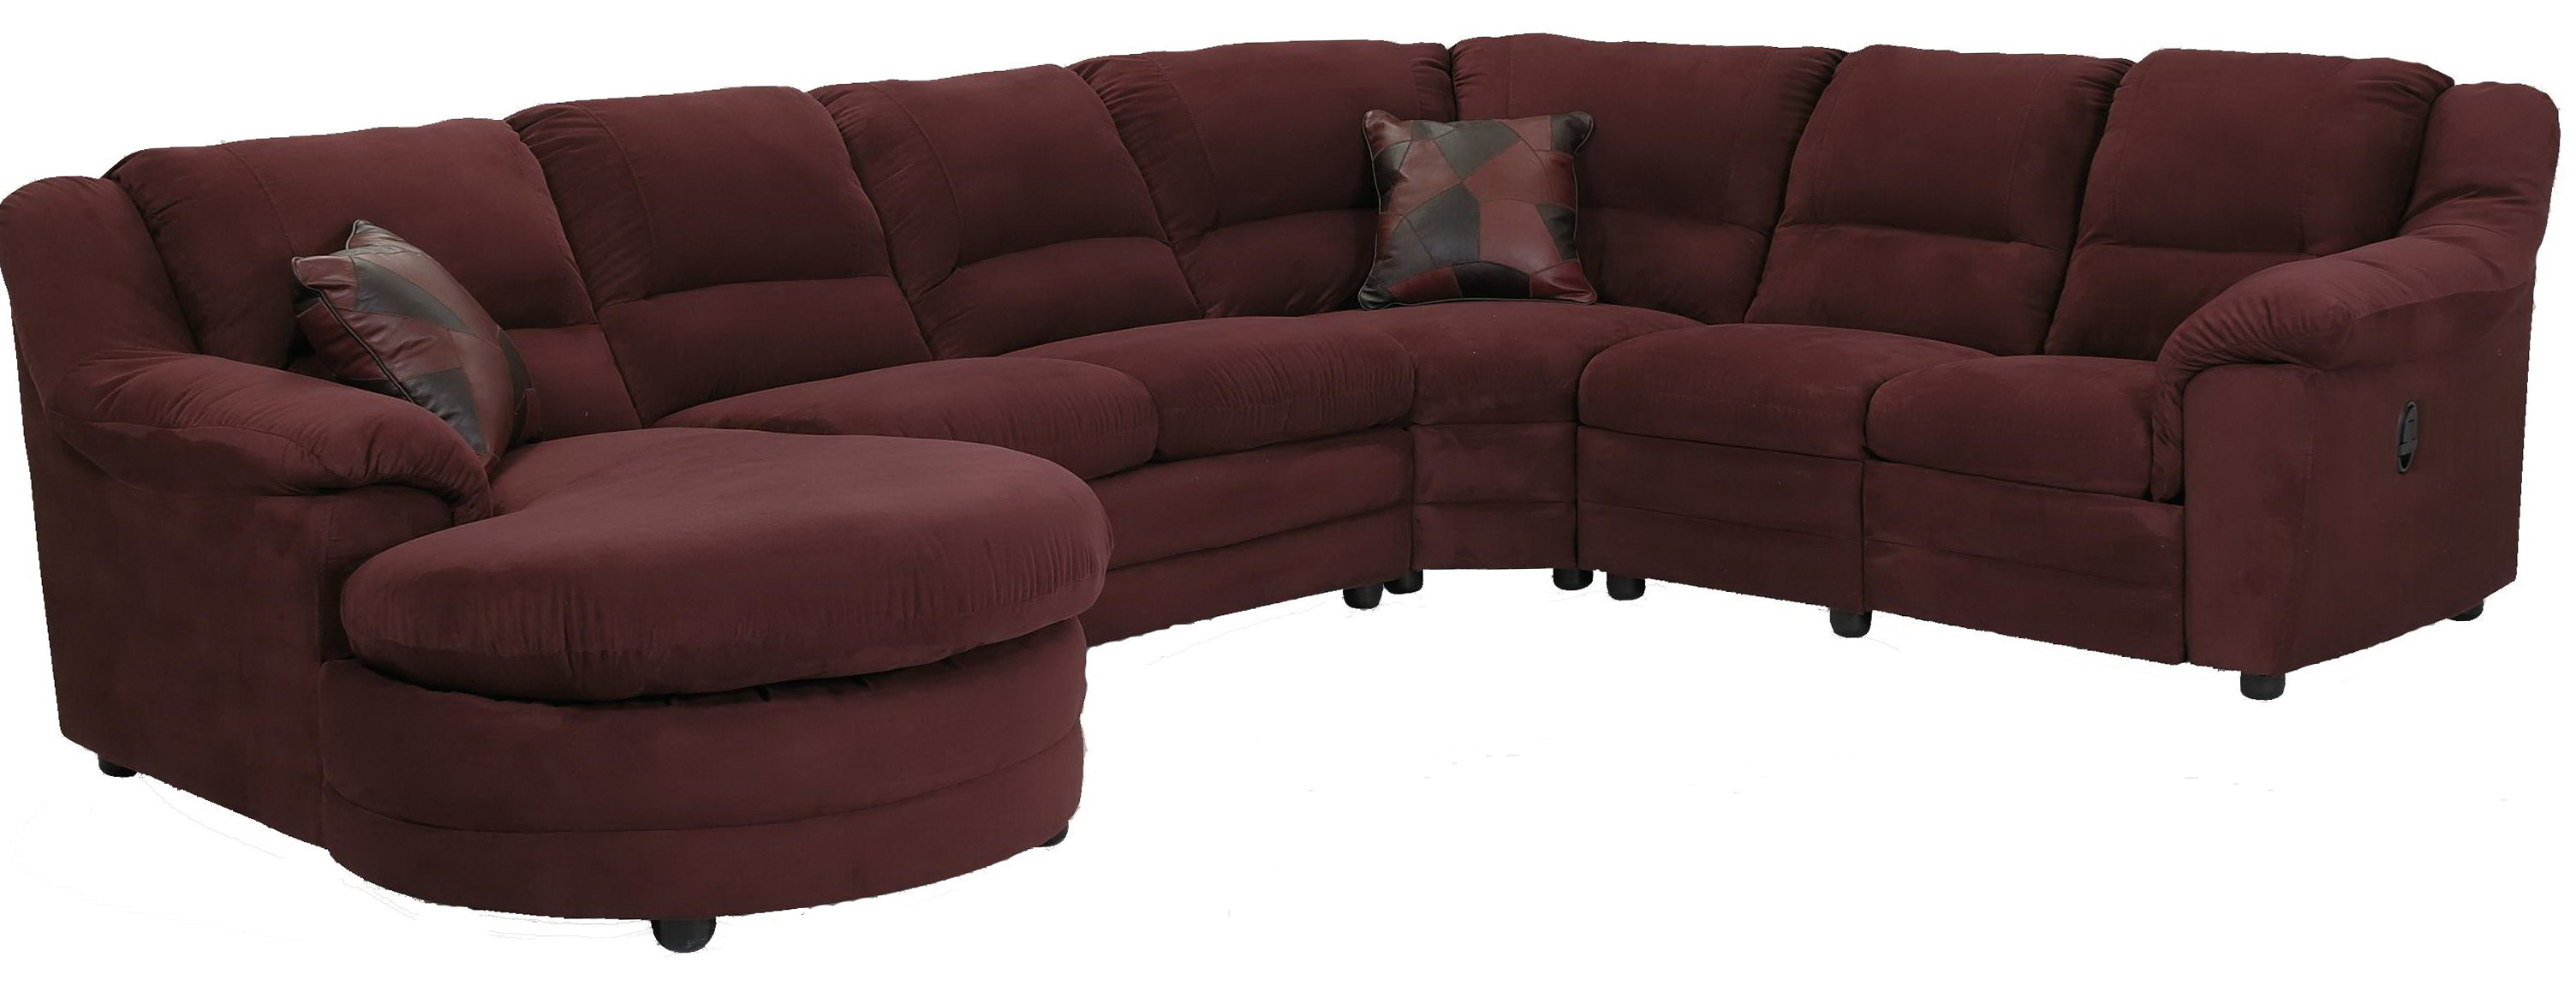 Reclining Sectional Sofas With Chaise